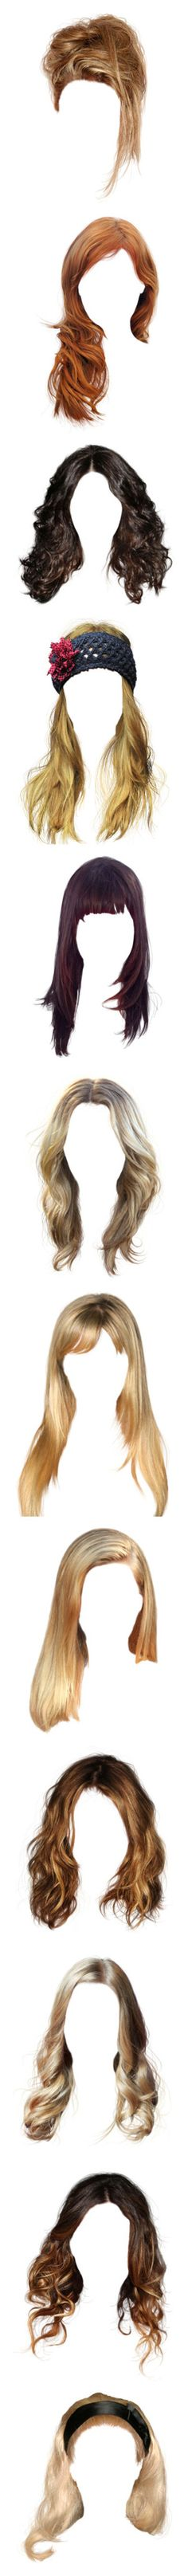 """""""Hair 06"""" by lyannas ❤ liked on Polyvore featuring beauty products, haircare, hair styling tools, hair, wigs, blonde hair, doll parts, dolls, doll hair and hairstyles"""